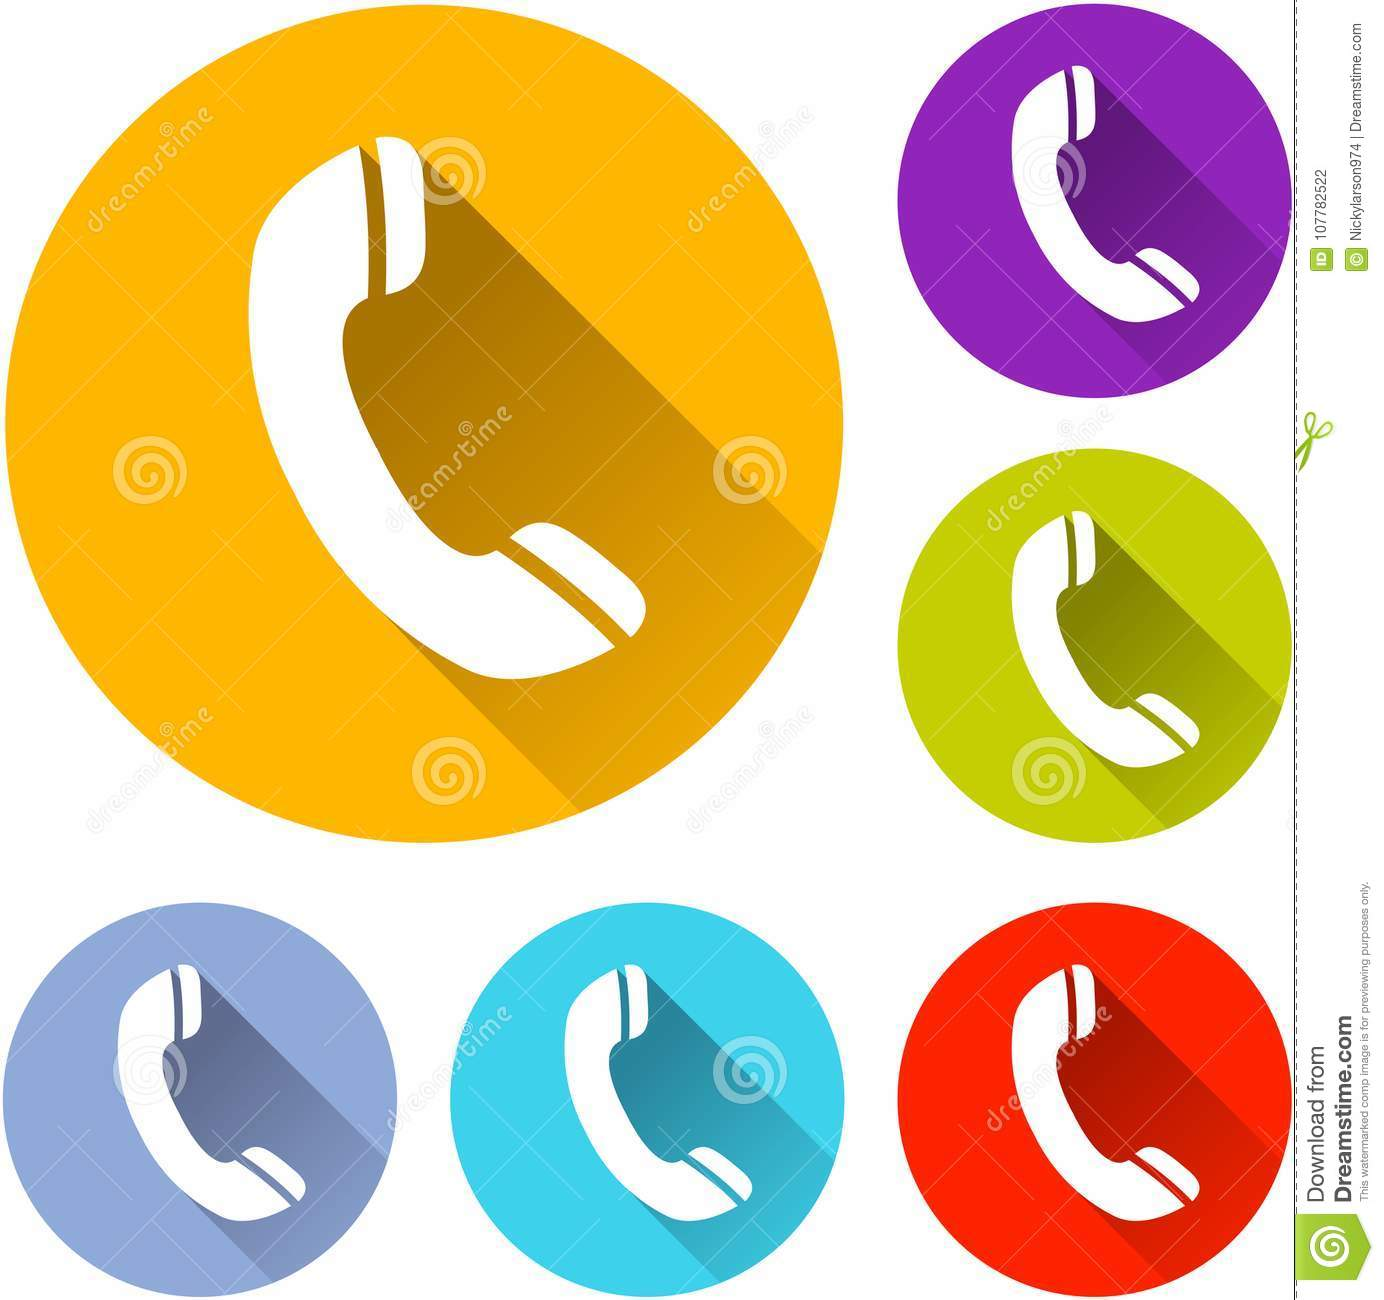 Six phone icons